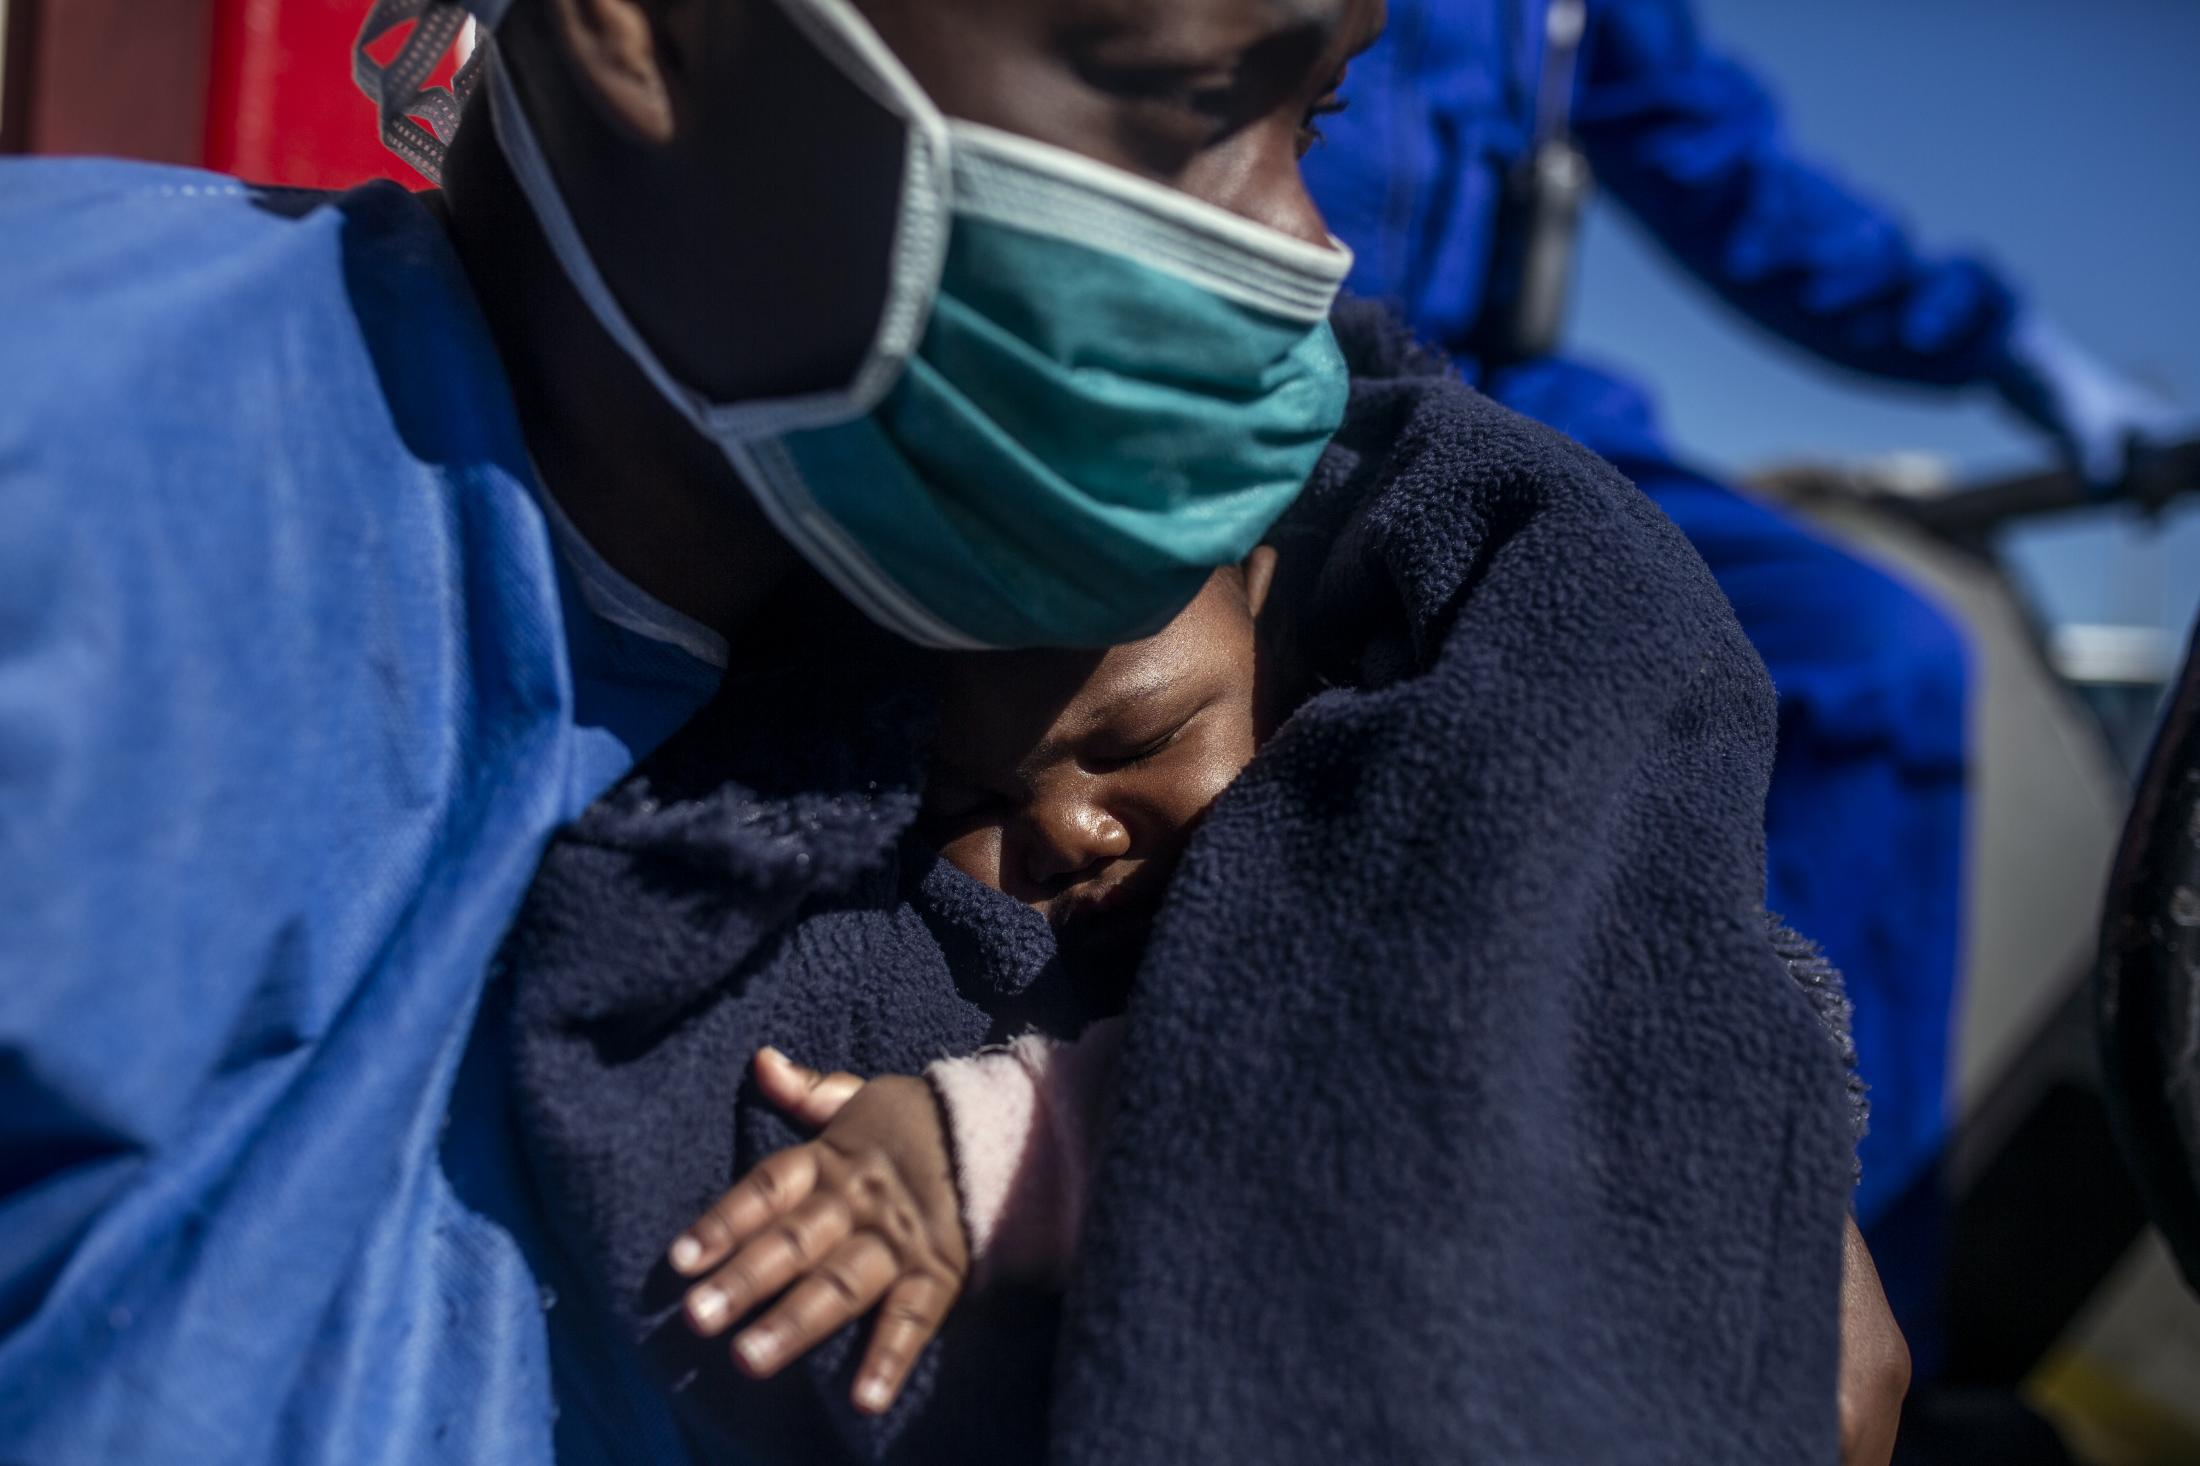 Sandrine,33 years old, Cameroon, holds her three-month-old son Moise moments before leaving the Spanish NGO Open Arms boat, in the Sicilian port of Empedocles, Italy, Tuesday, Feb. 16, 2021